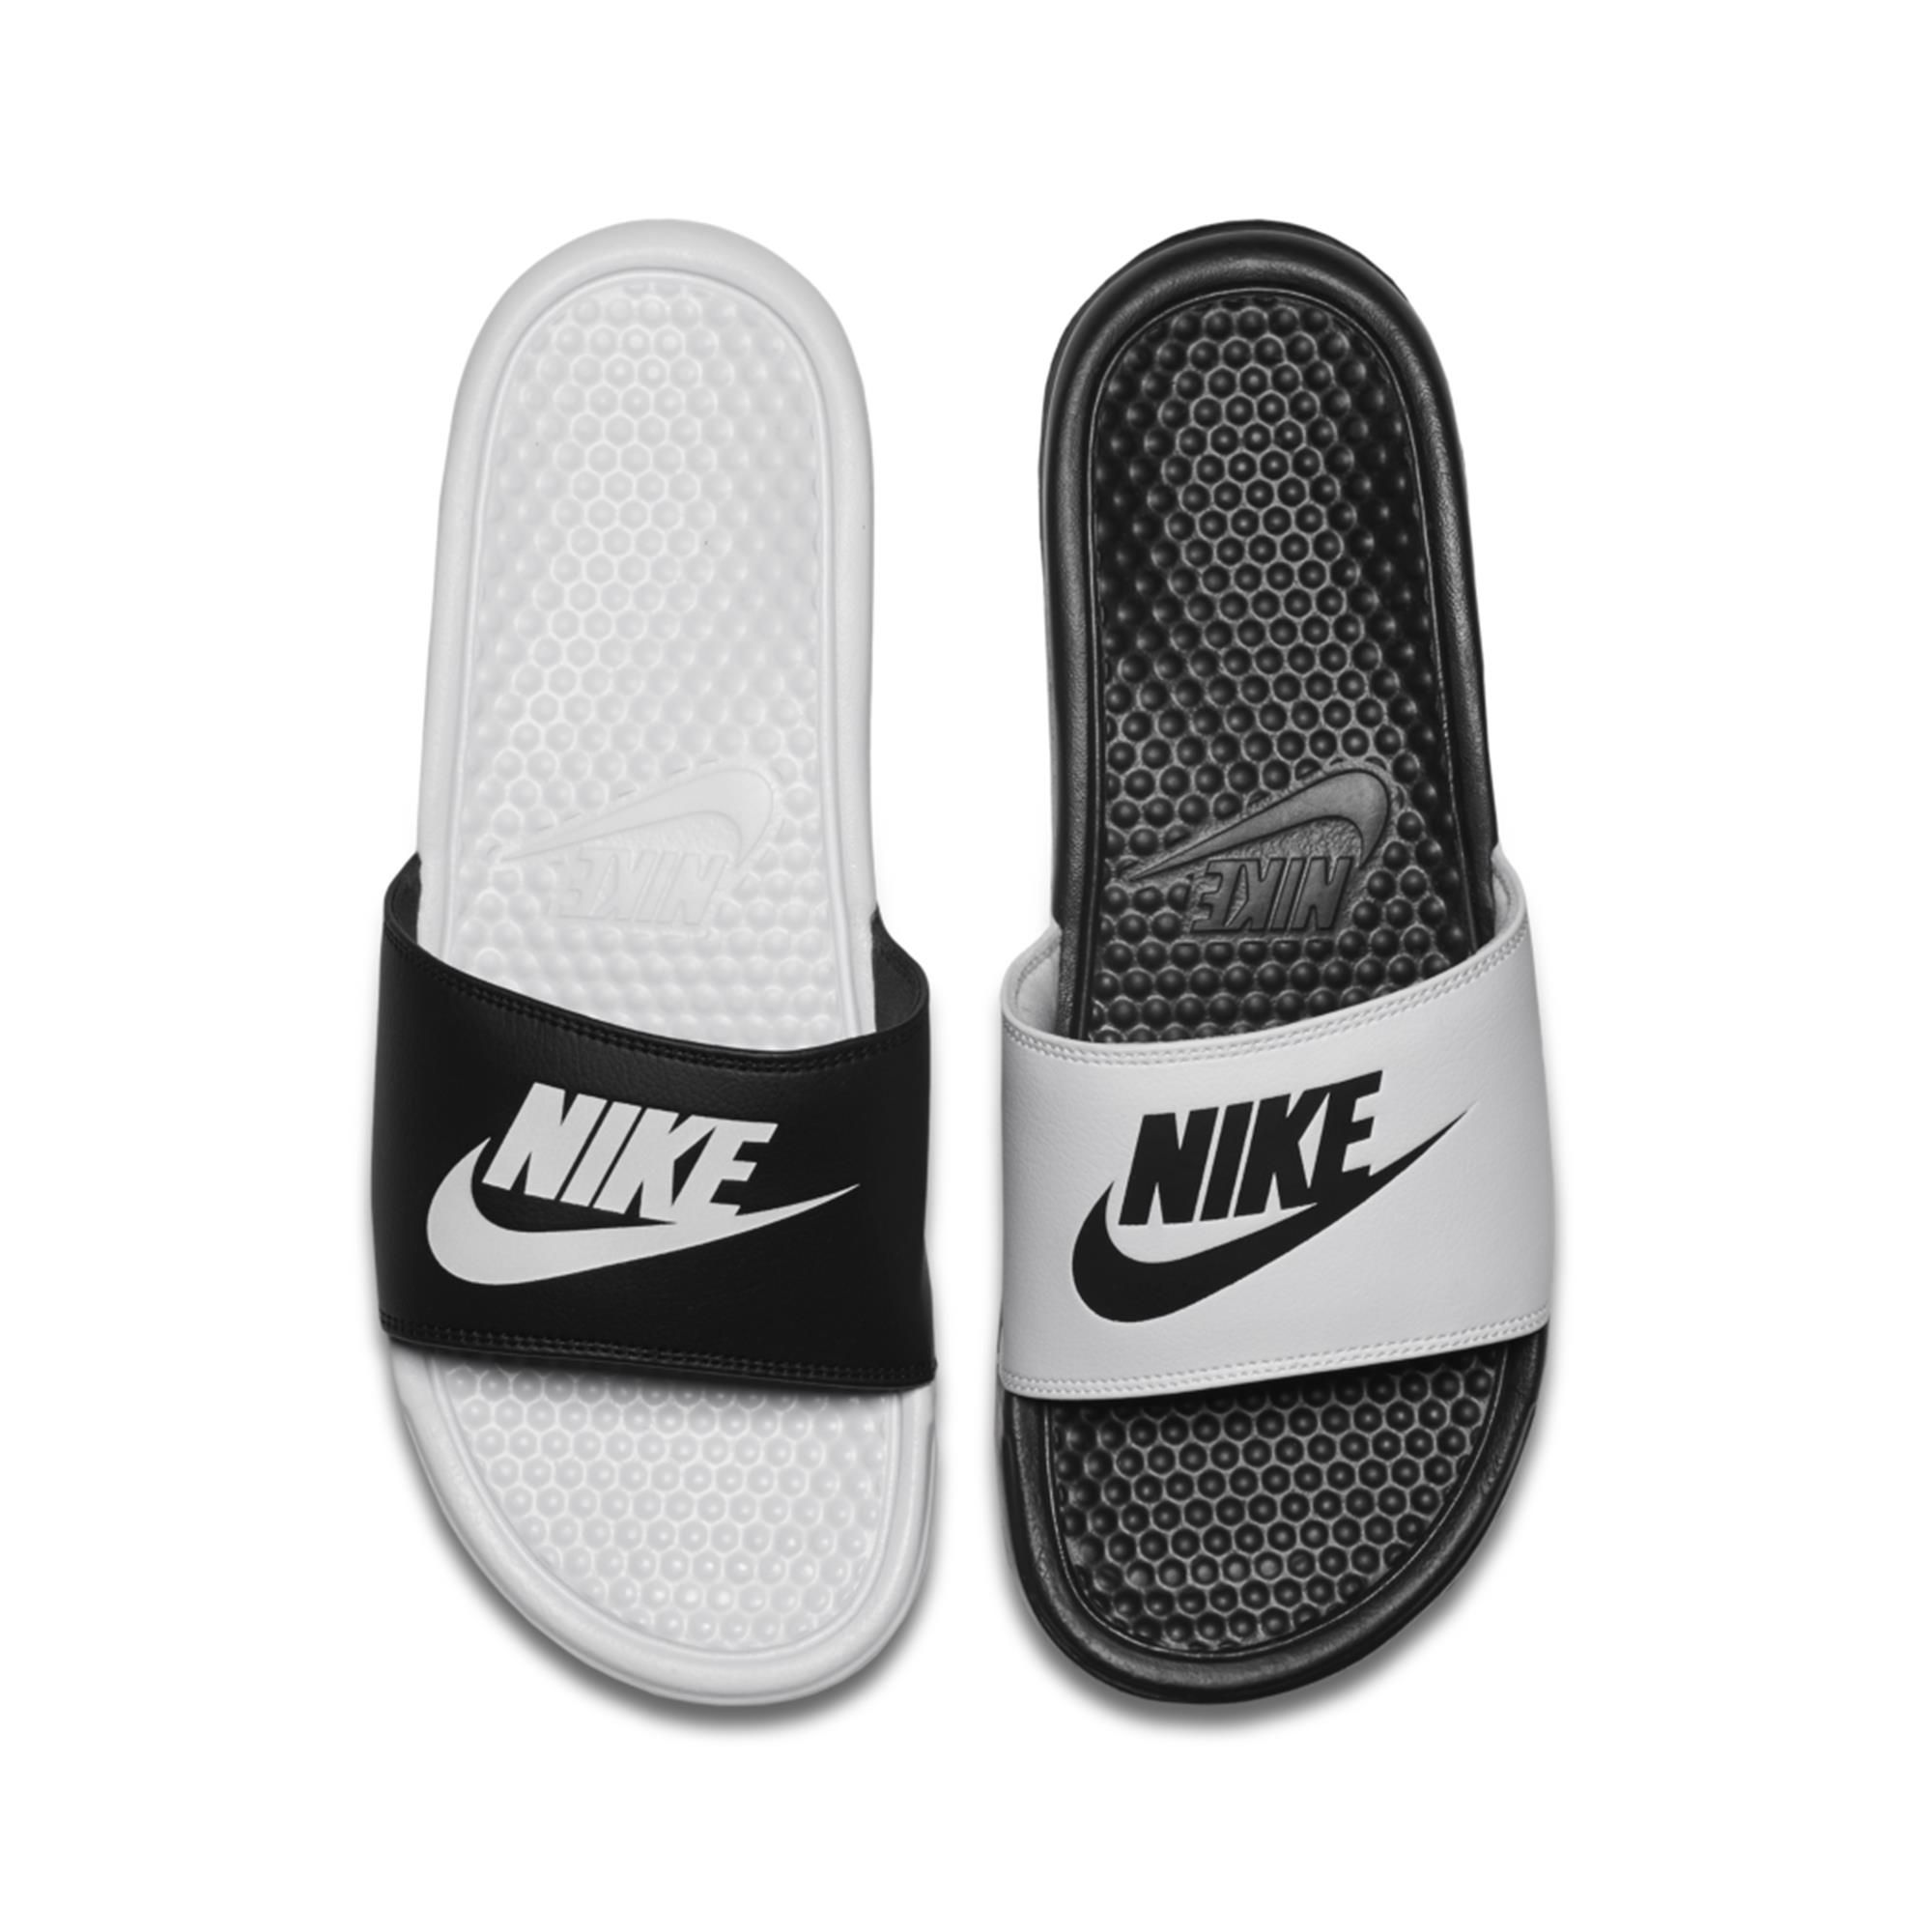 Chinelo Nike Benassi Just do It Mismatch Masculino  4c9e029a852fa